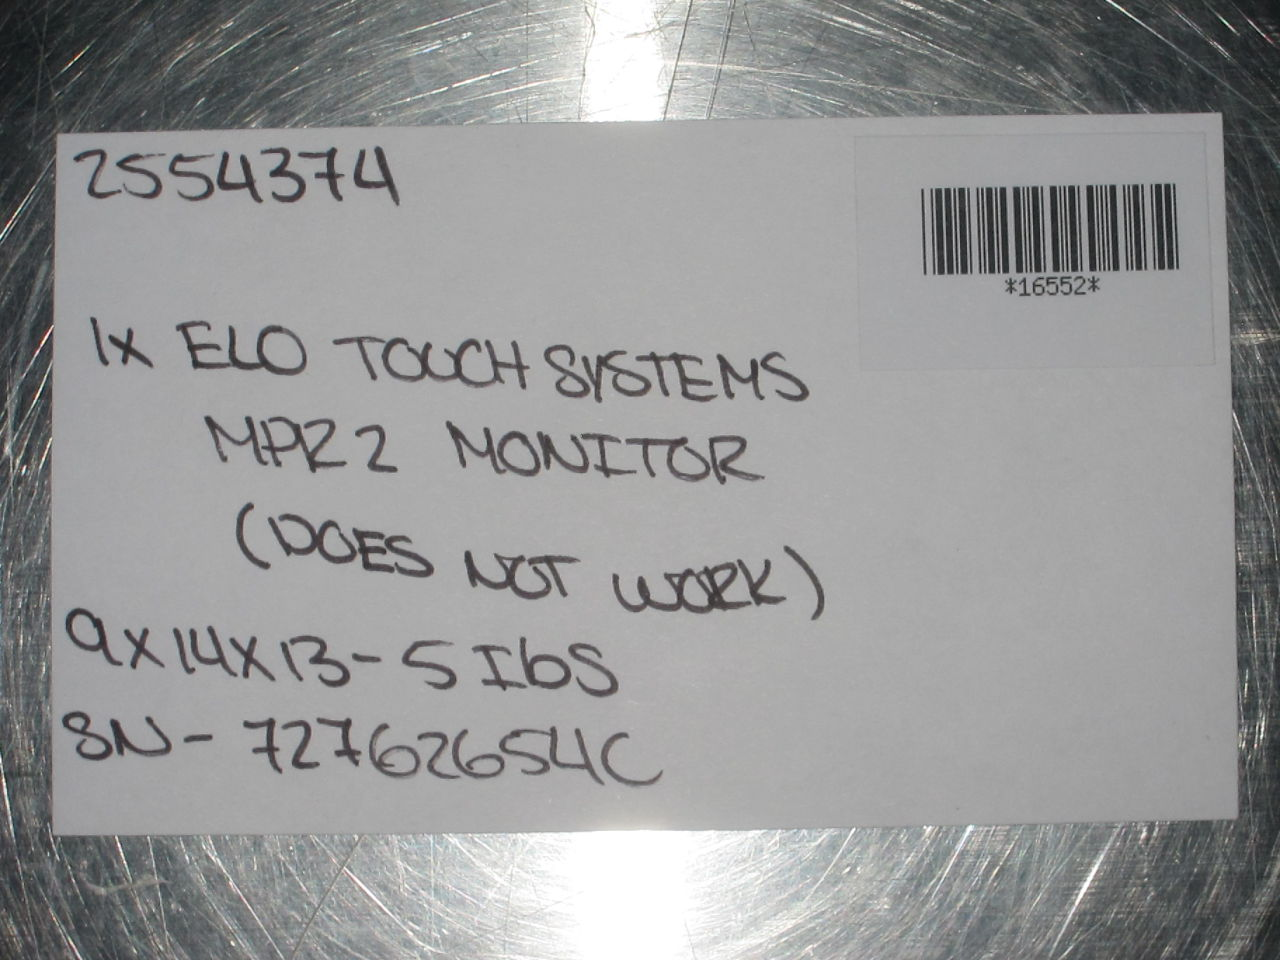 ELO TOUCH SYSTEMS MPR 2 Display Monitor